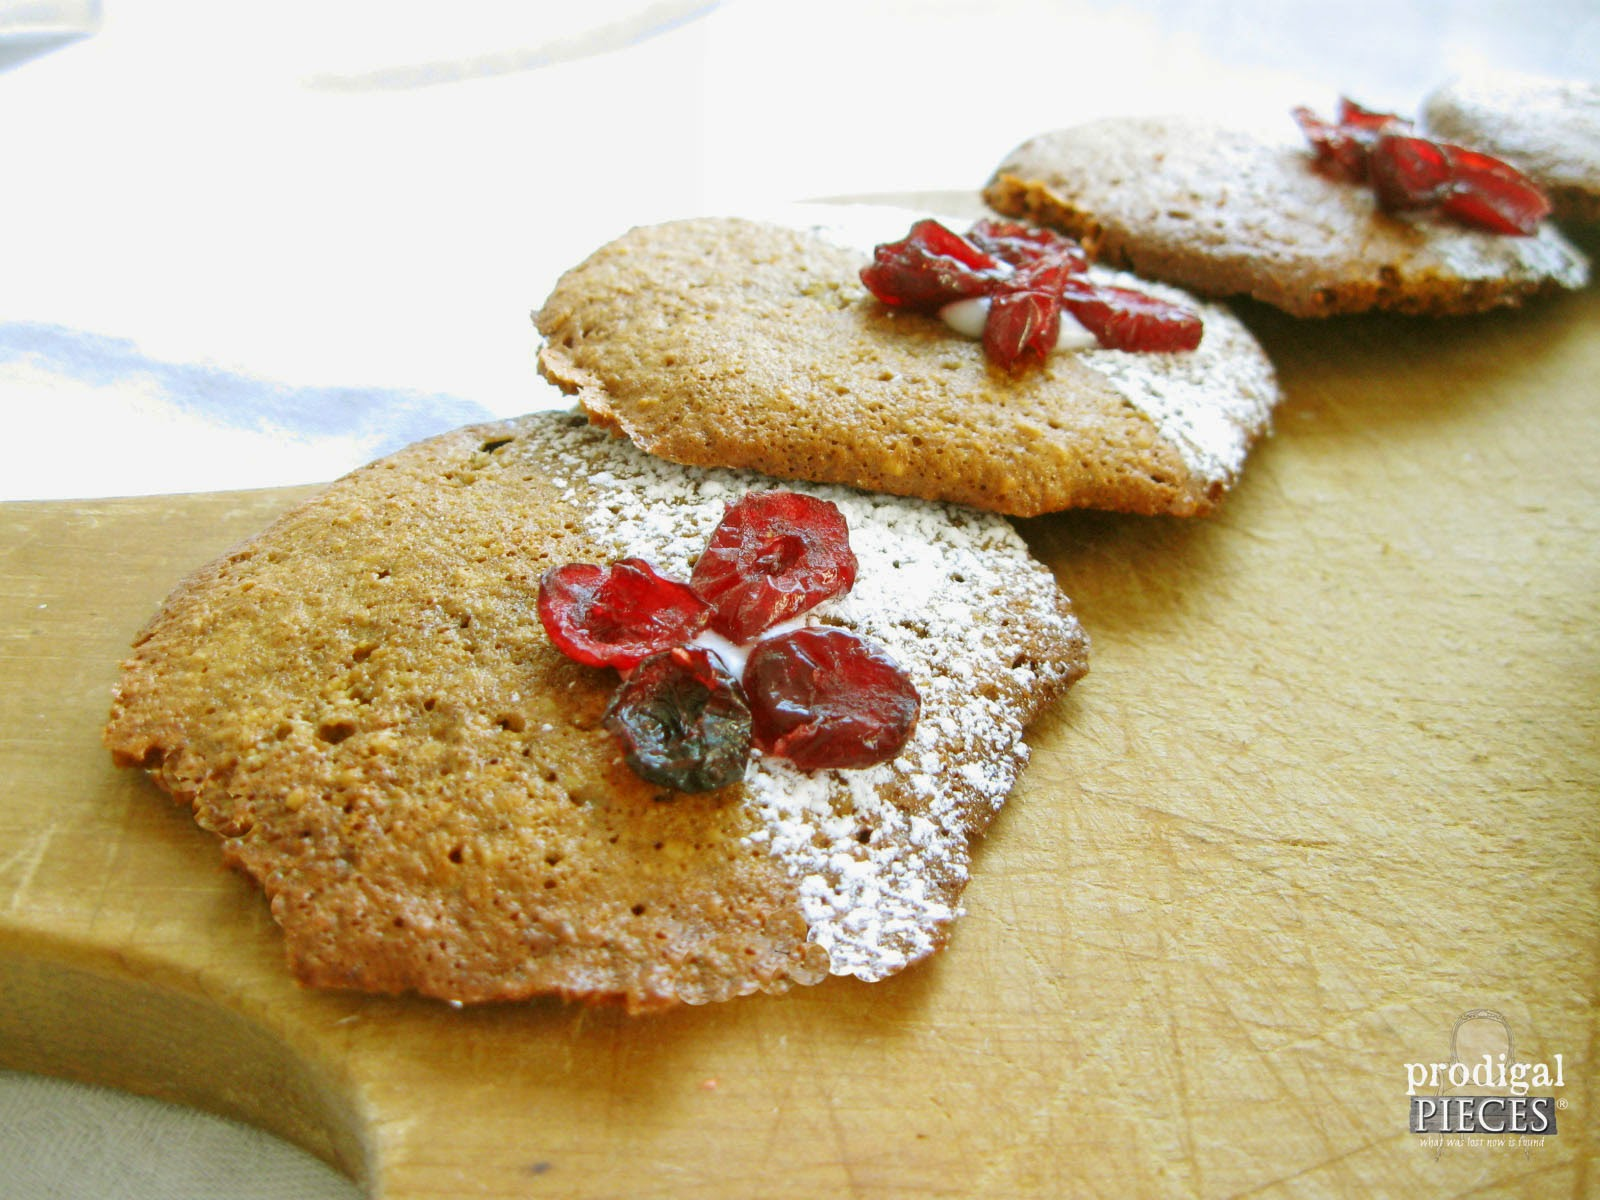 Delicious Grain-Free Spice Cookie for Christmas | by Prodigal Pieces | prodigalpieces.com